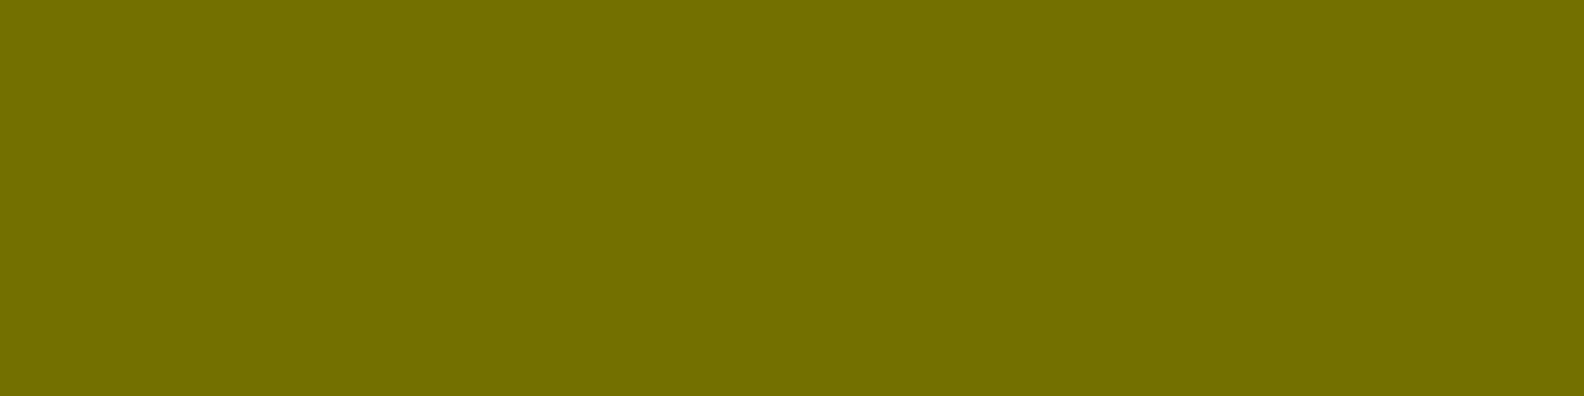 1584x396 Bronze Yellow Solid Color Background